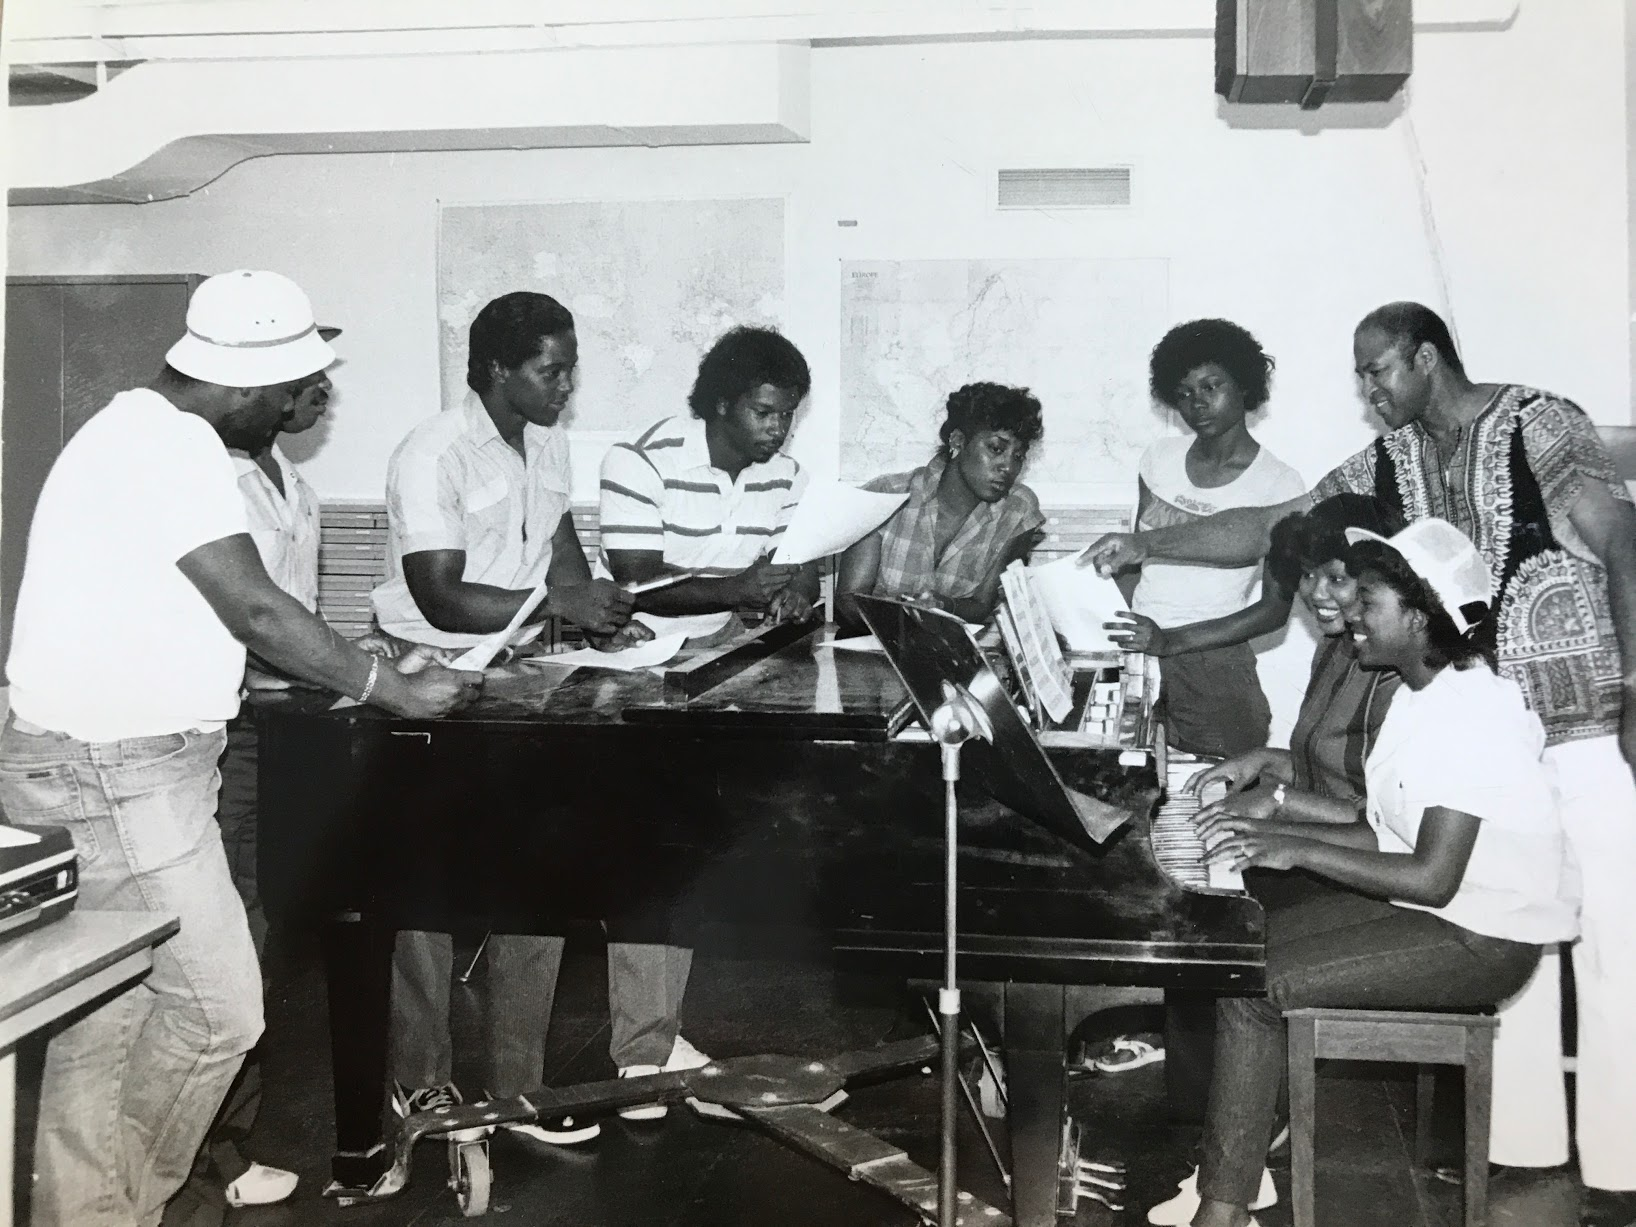 Historic photo of students singing at a piano